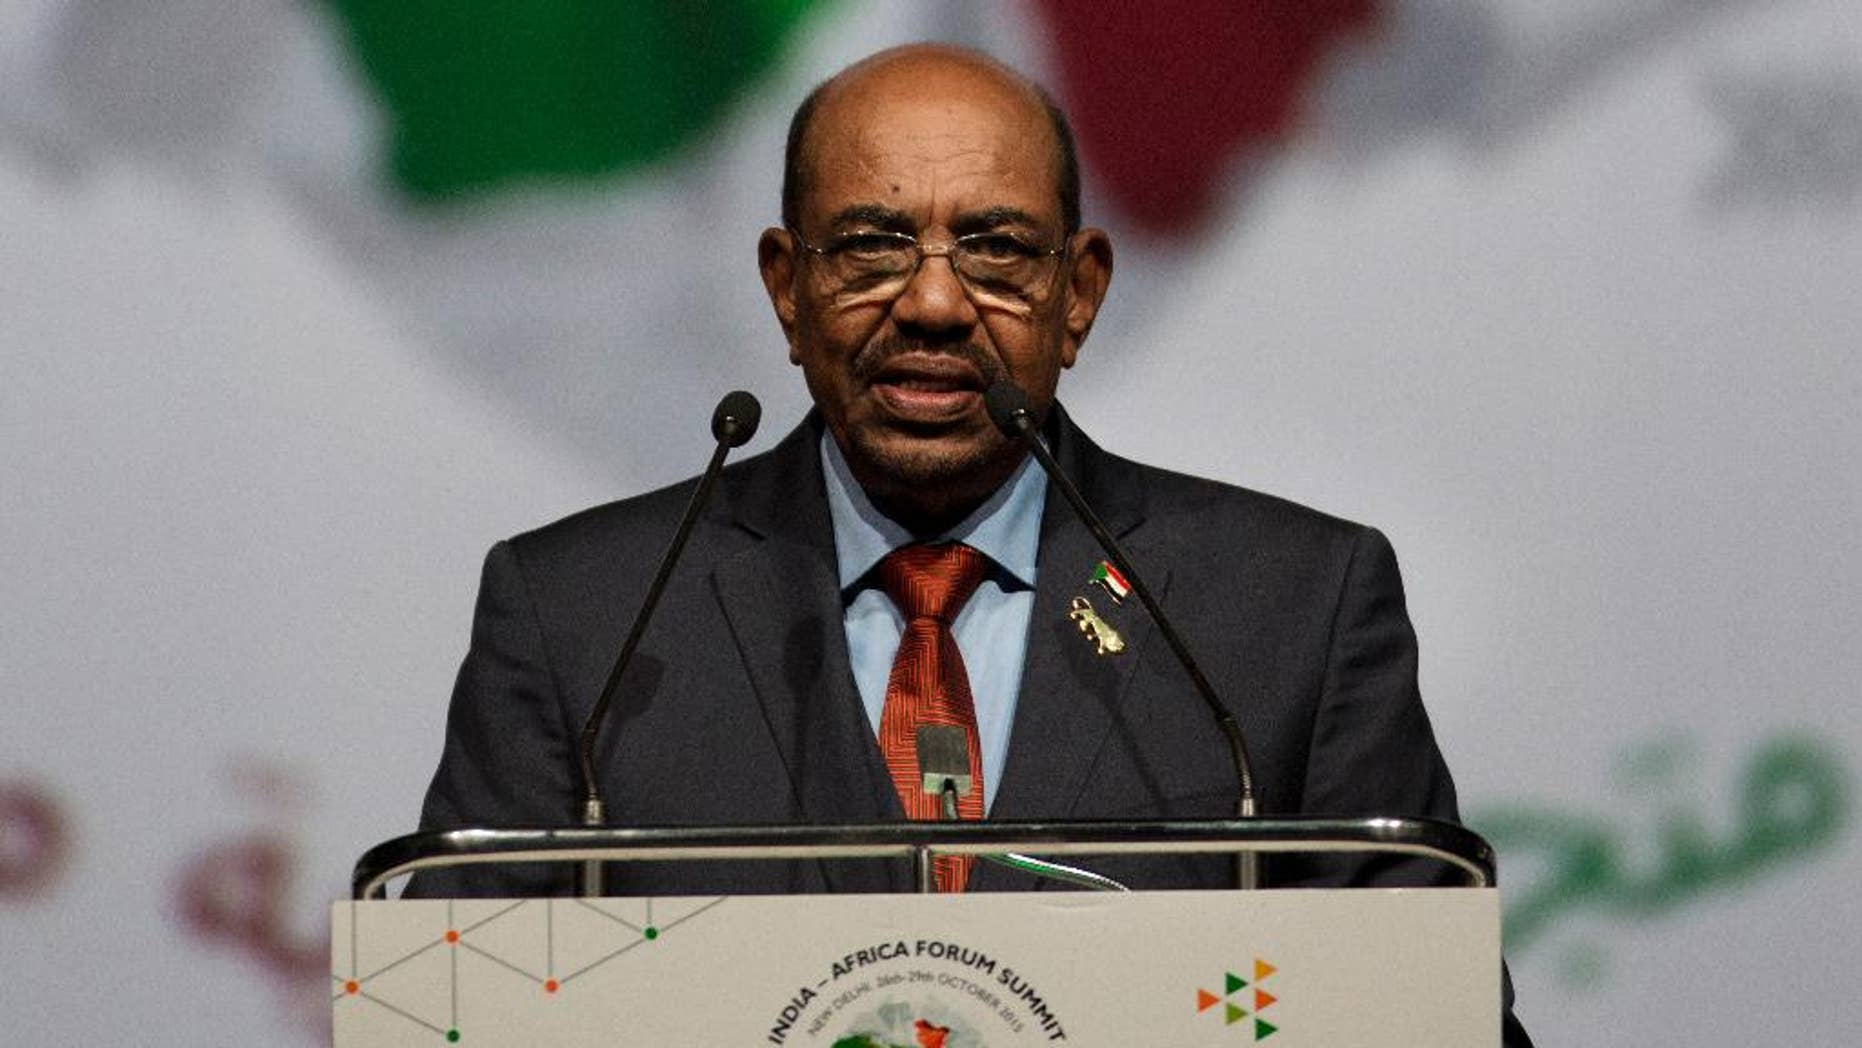 FILE - In this Oct. 29, 2015 file photo, Sudanese President Omar al-Bashir speaks in New Delhi, India. The Obama administration, which has negotiated new relationships with states like Cuba, Iran and Myanmar, is now eyeing a rapprochement with Sudan, a nation that has long been designated a state sponsor of terrorism and whose current leader has been indicted on war crimes charges.  (AP Photo/Bernat Armangue, File)